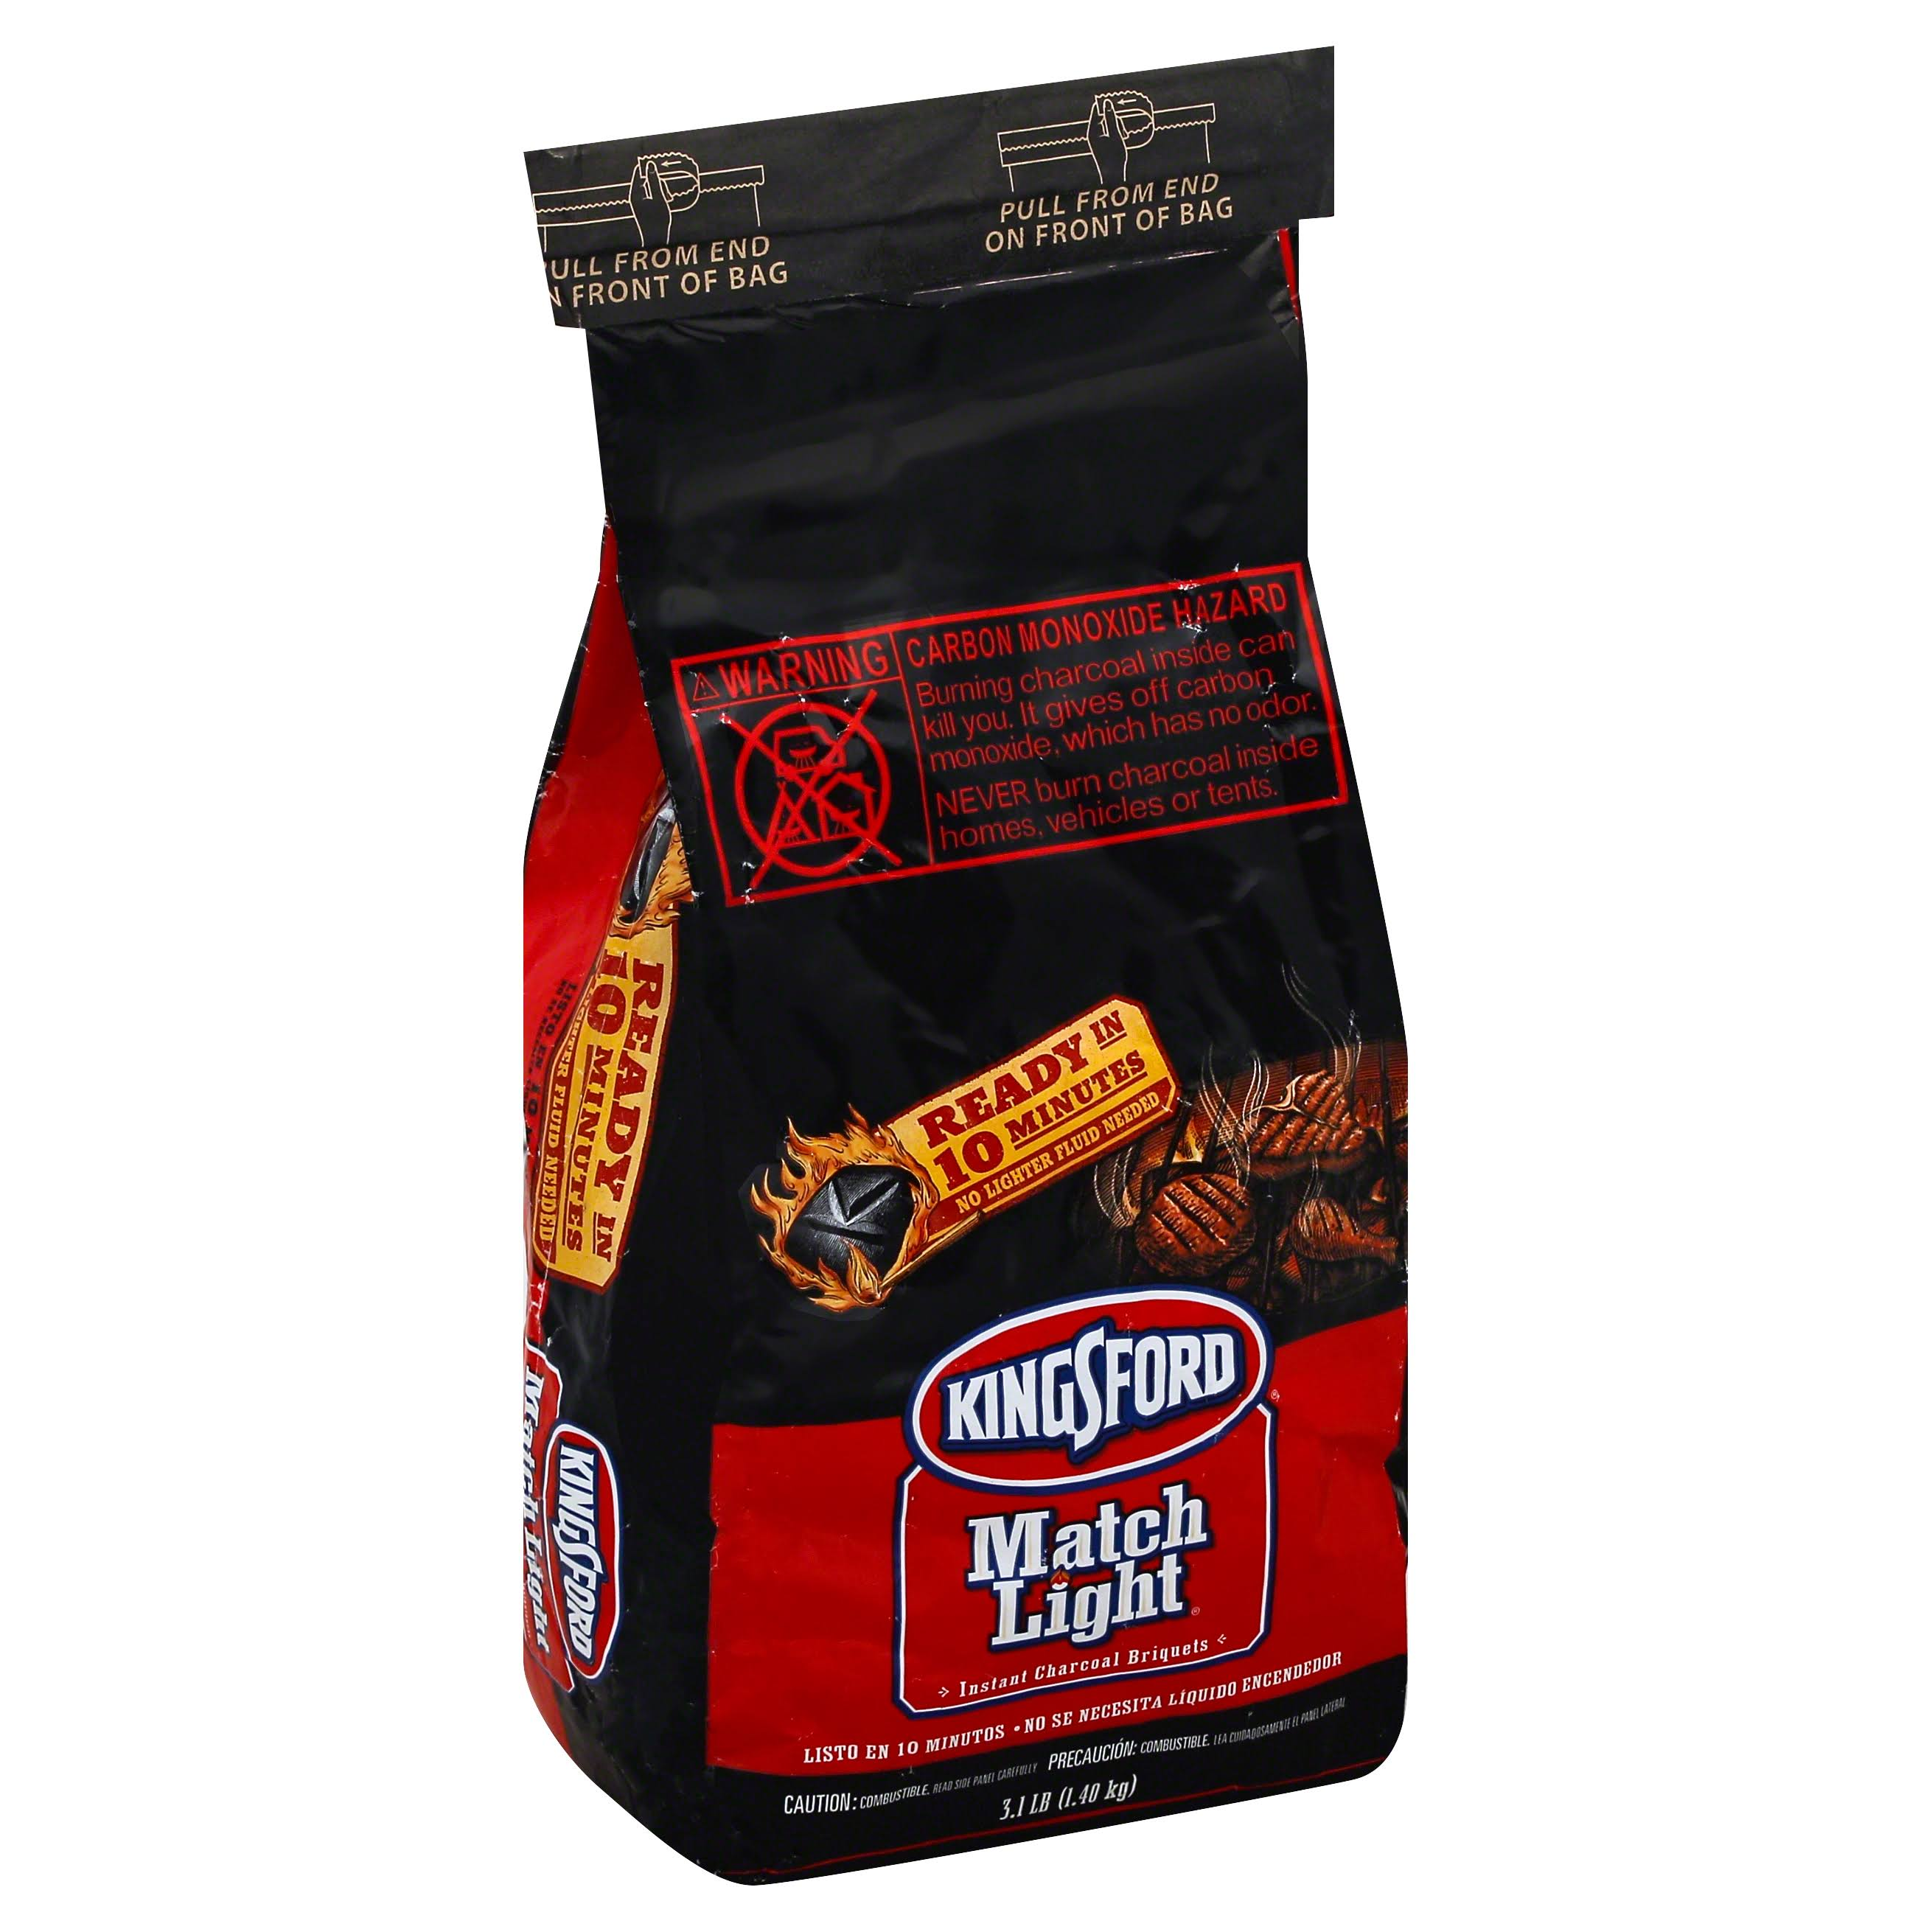 Kingsford Match Light Charcoal Briquets